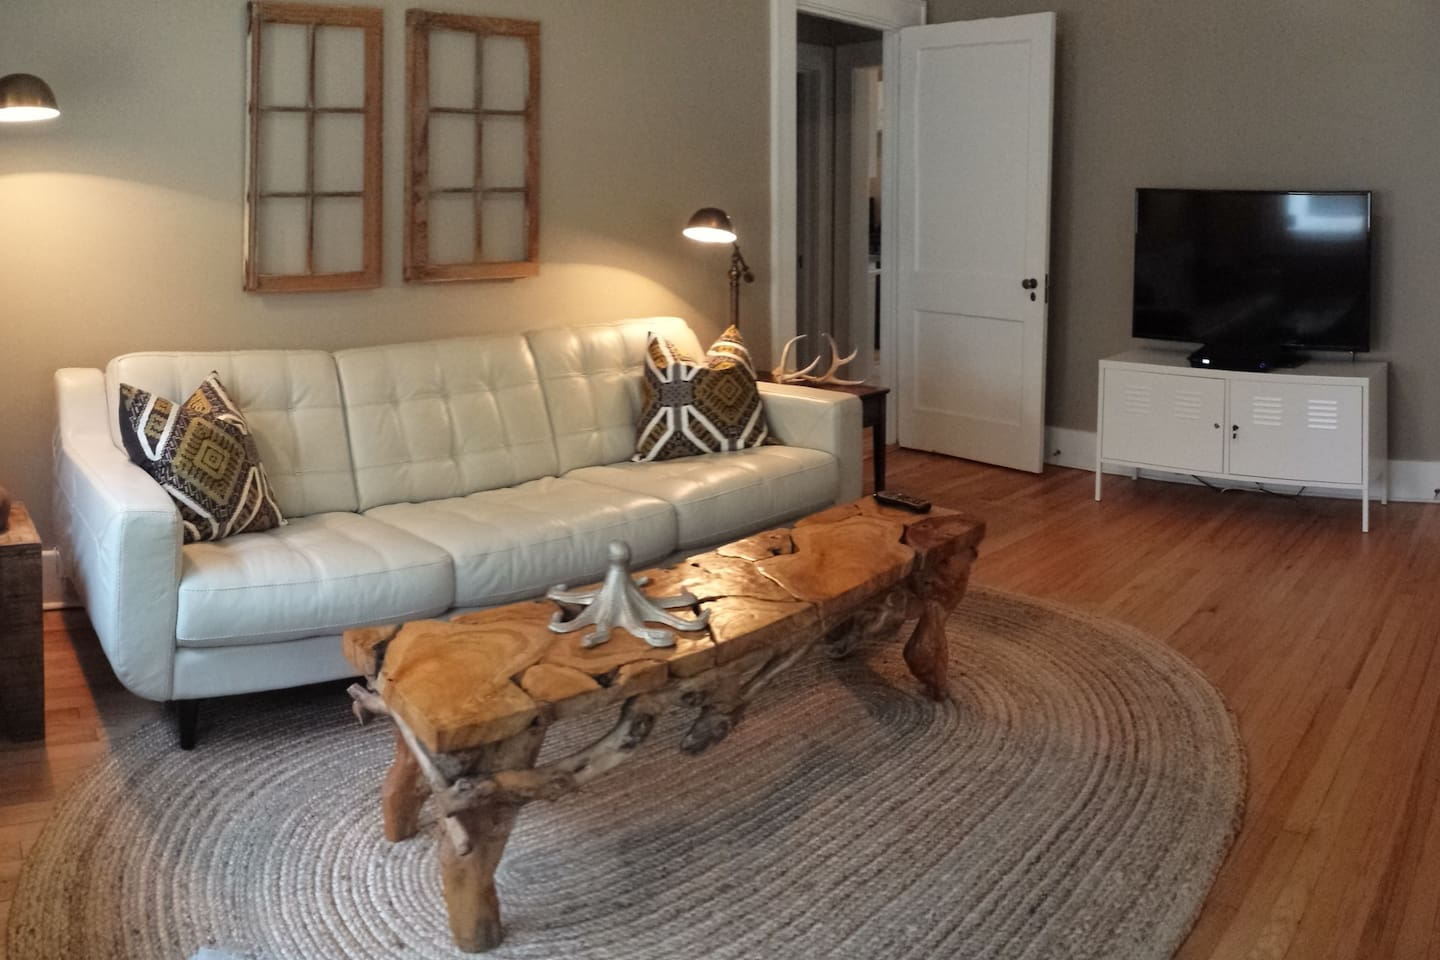 HIP DOWNTOWN 2BR BUNGALOW + PARKING